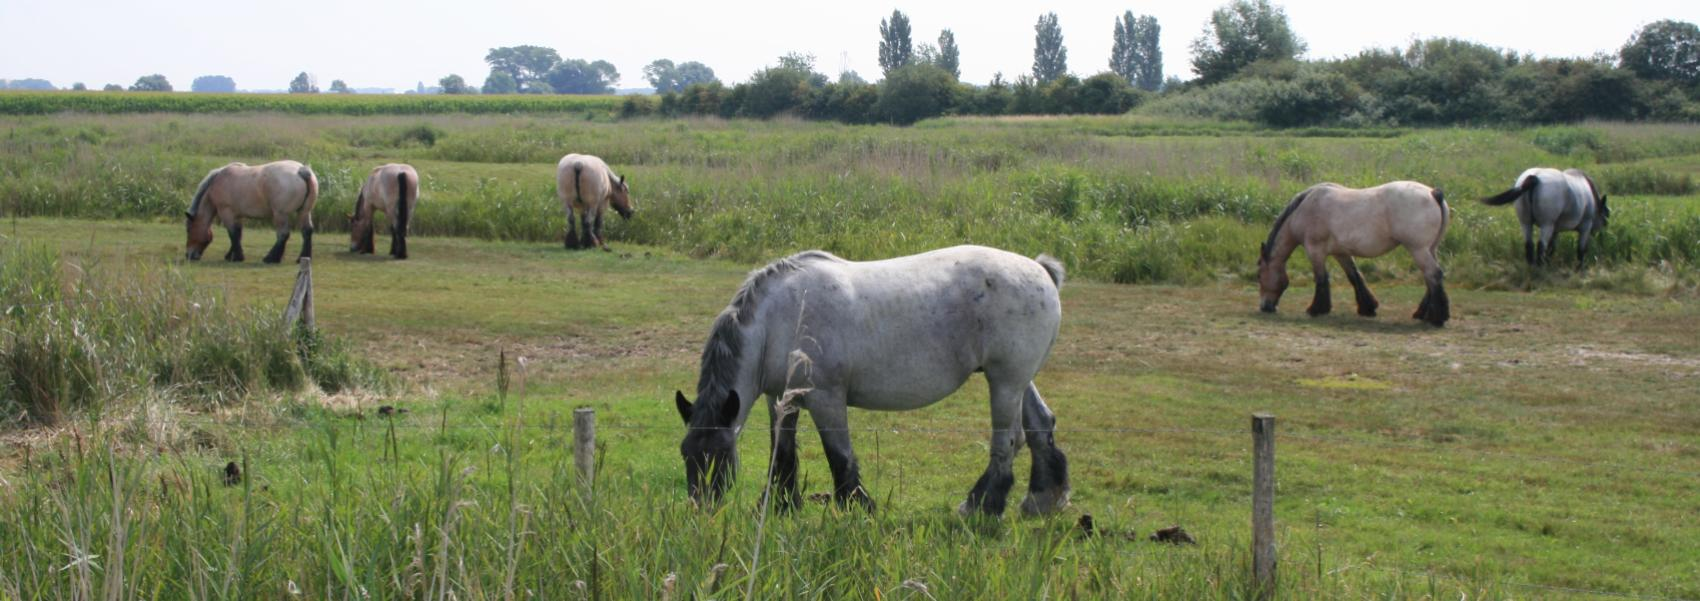 begrazing door paarden in de schorreweide